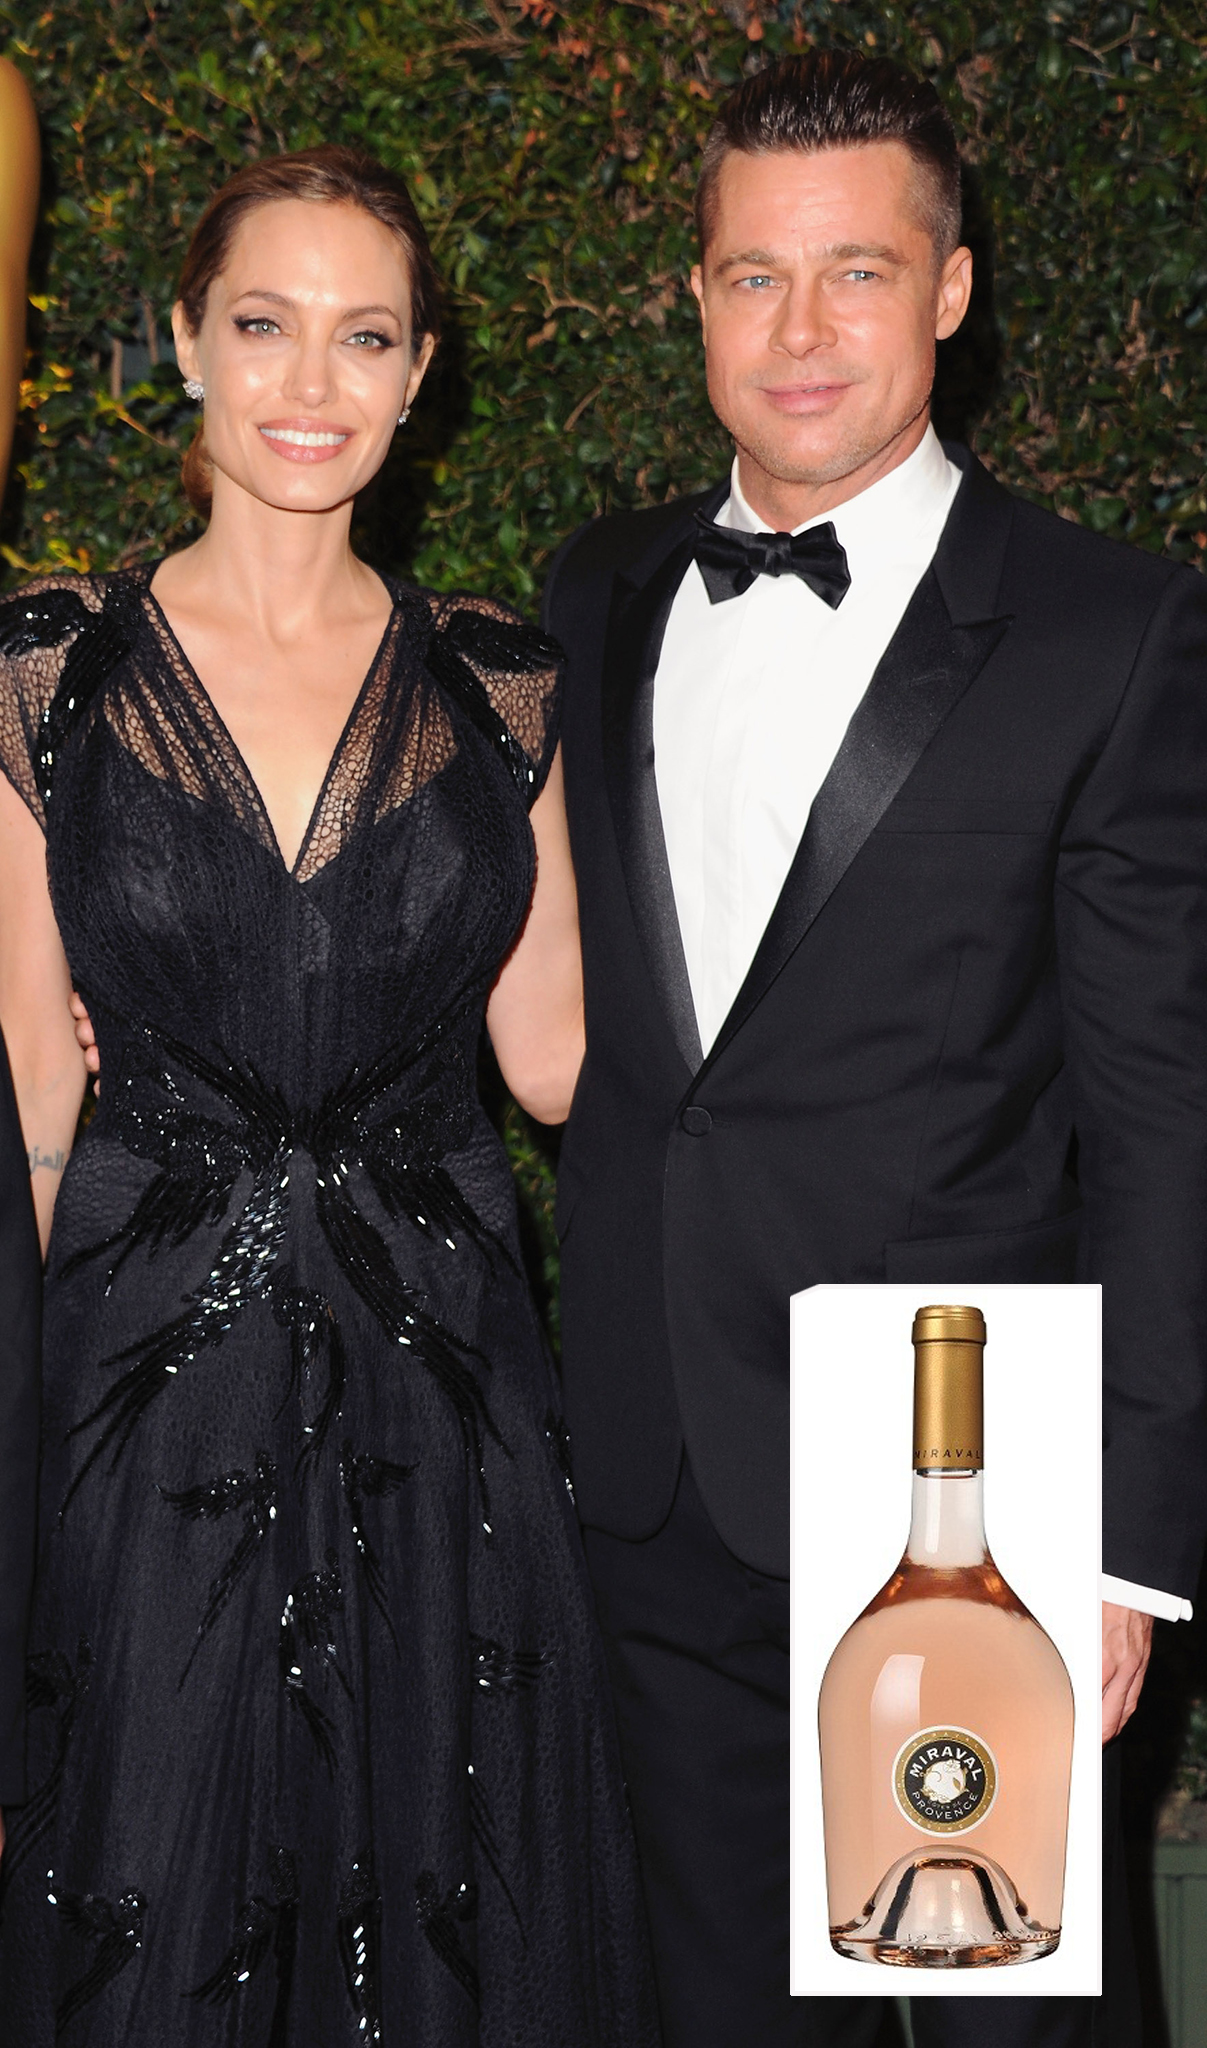 Angelina Jolie and Brad Pitt's rosé is a hit. (Getty Images)